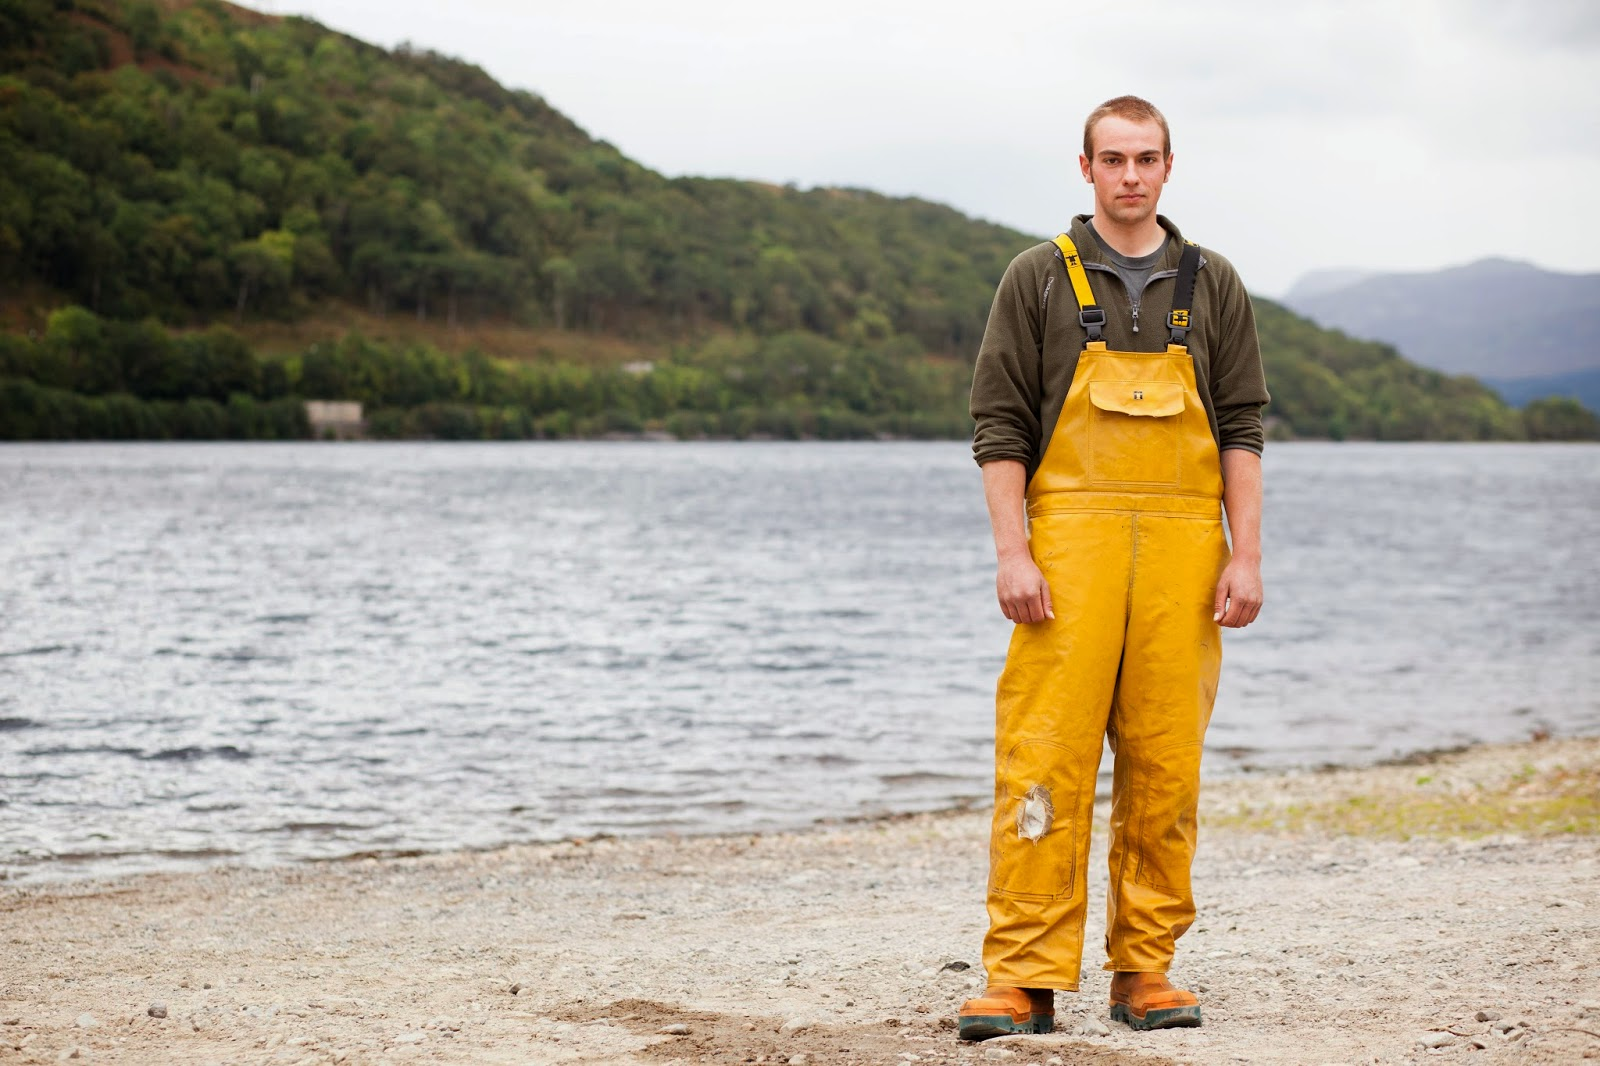 http://www.lantra.co.uk/News-Media/News/Aquaculture-success-for-two-brothers-at-the-Scottish-Salmon-Company.aspx